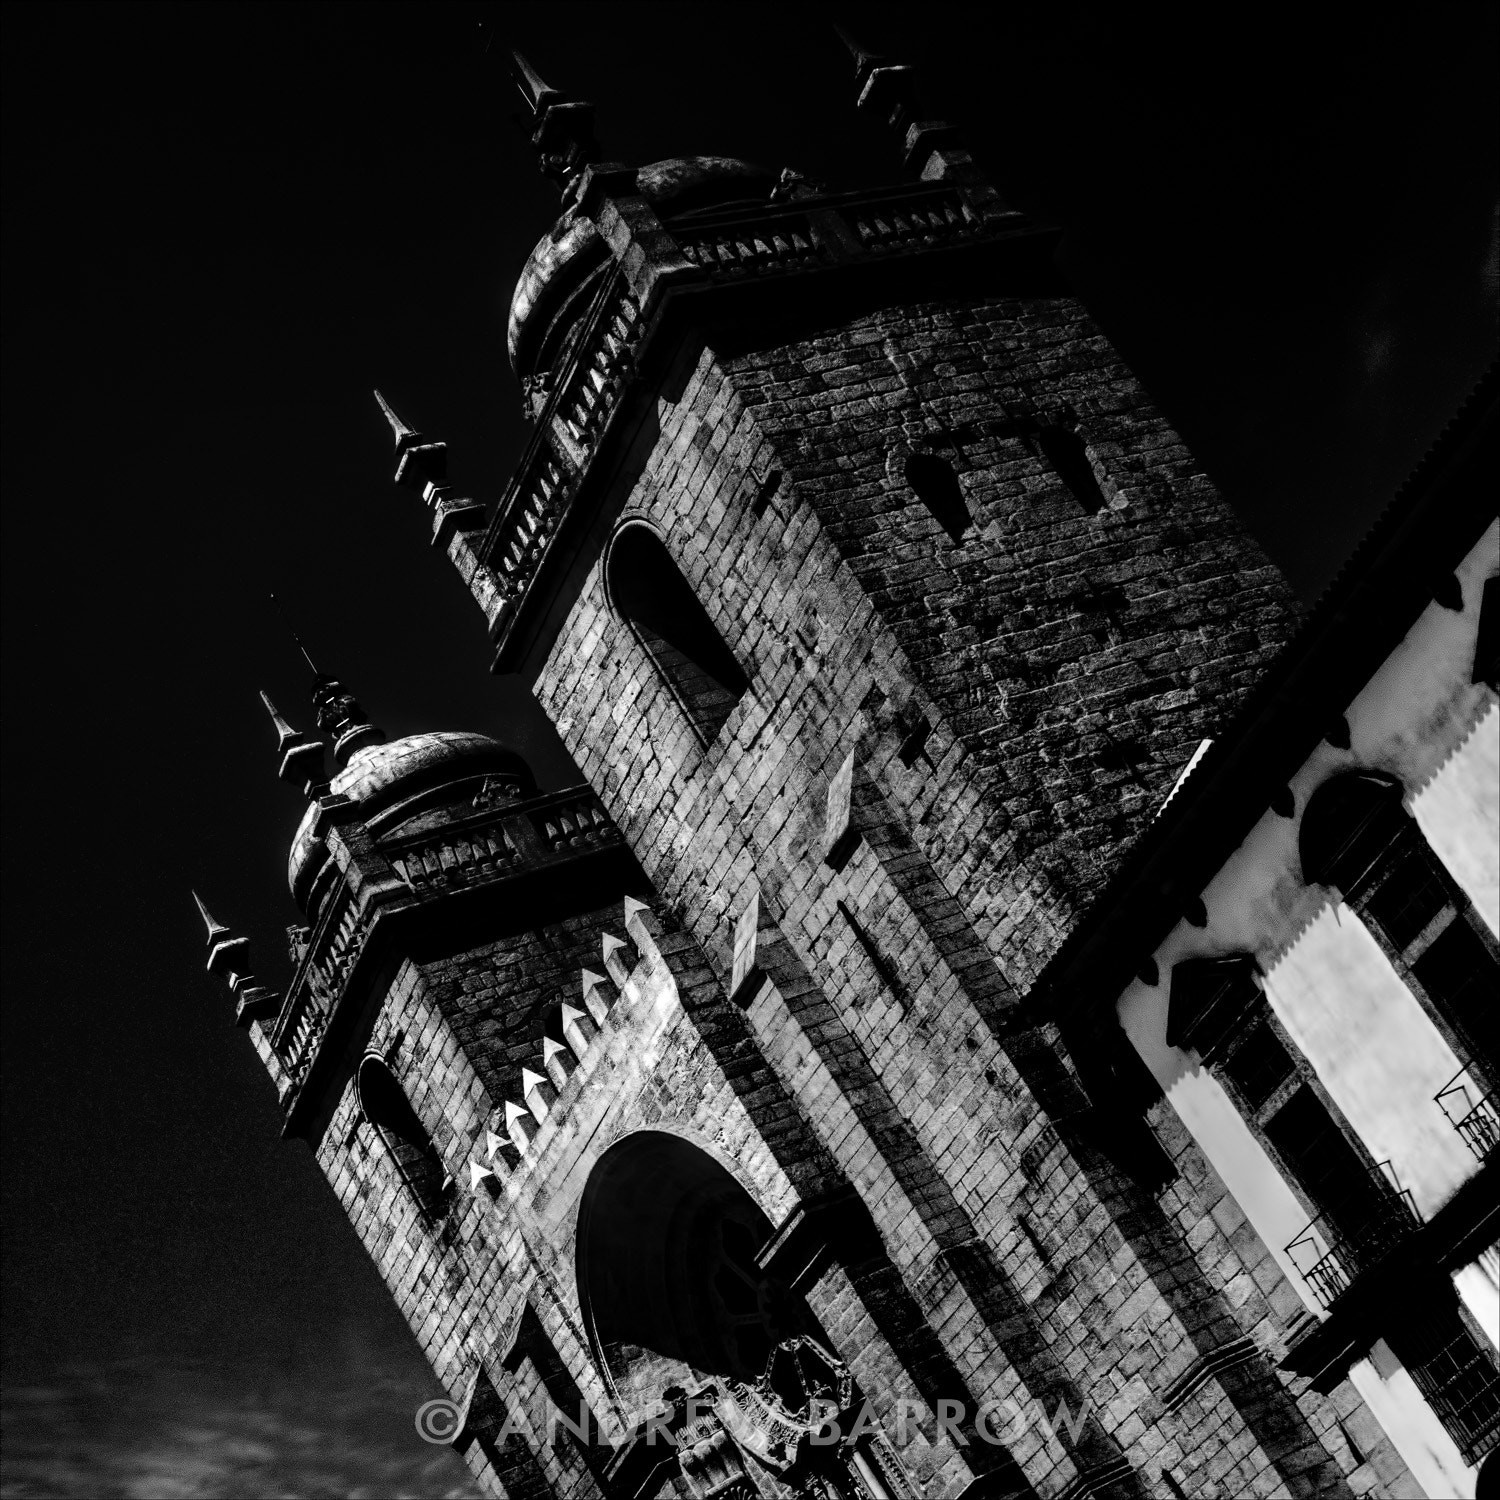 Photograph Oporto Cathedral by Andrew Barrow ARPS on 500px